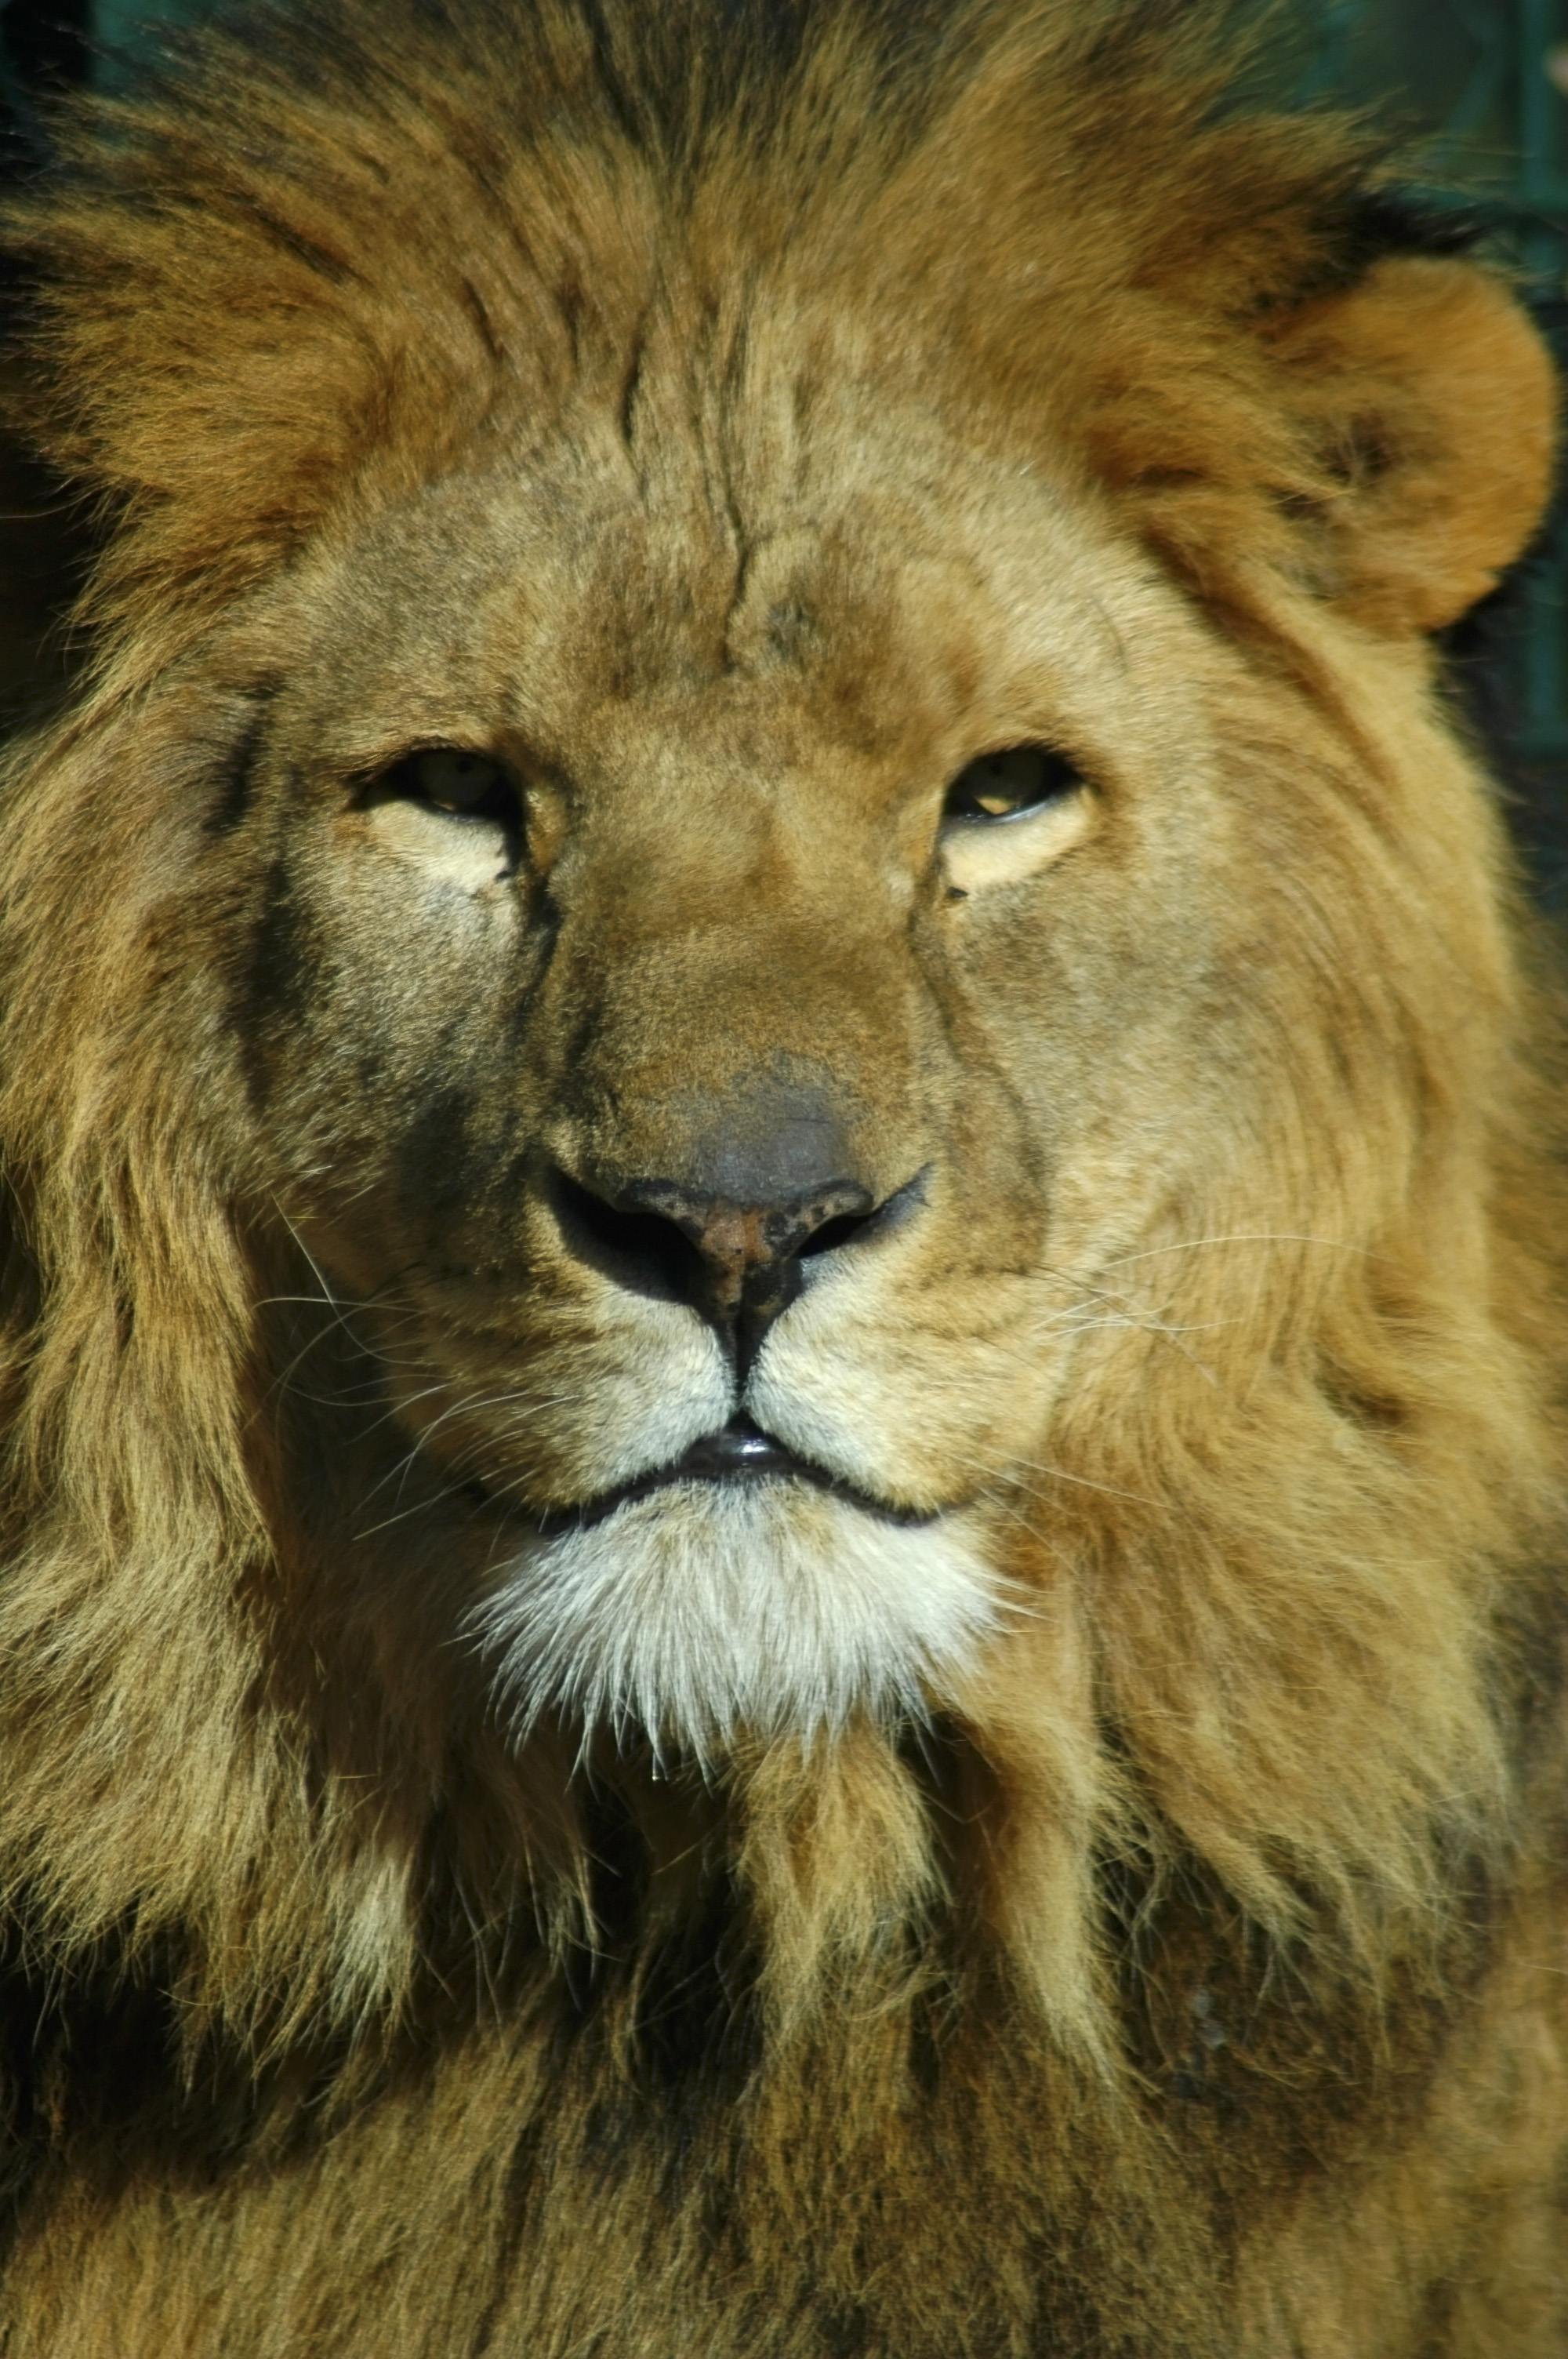 Lion, African, Animal, Carnivore, Cat, HQ Photo